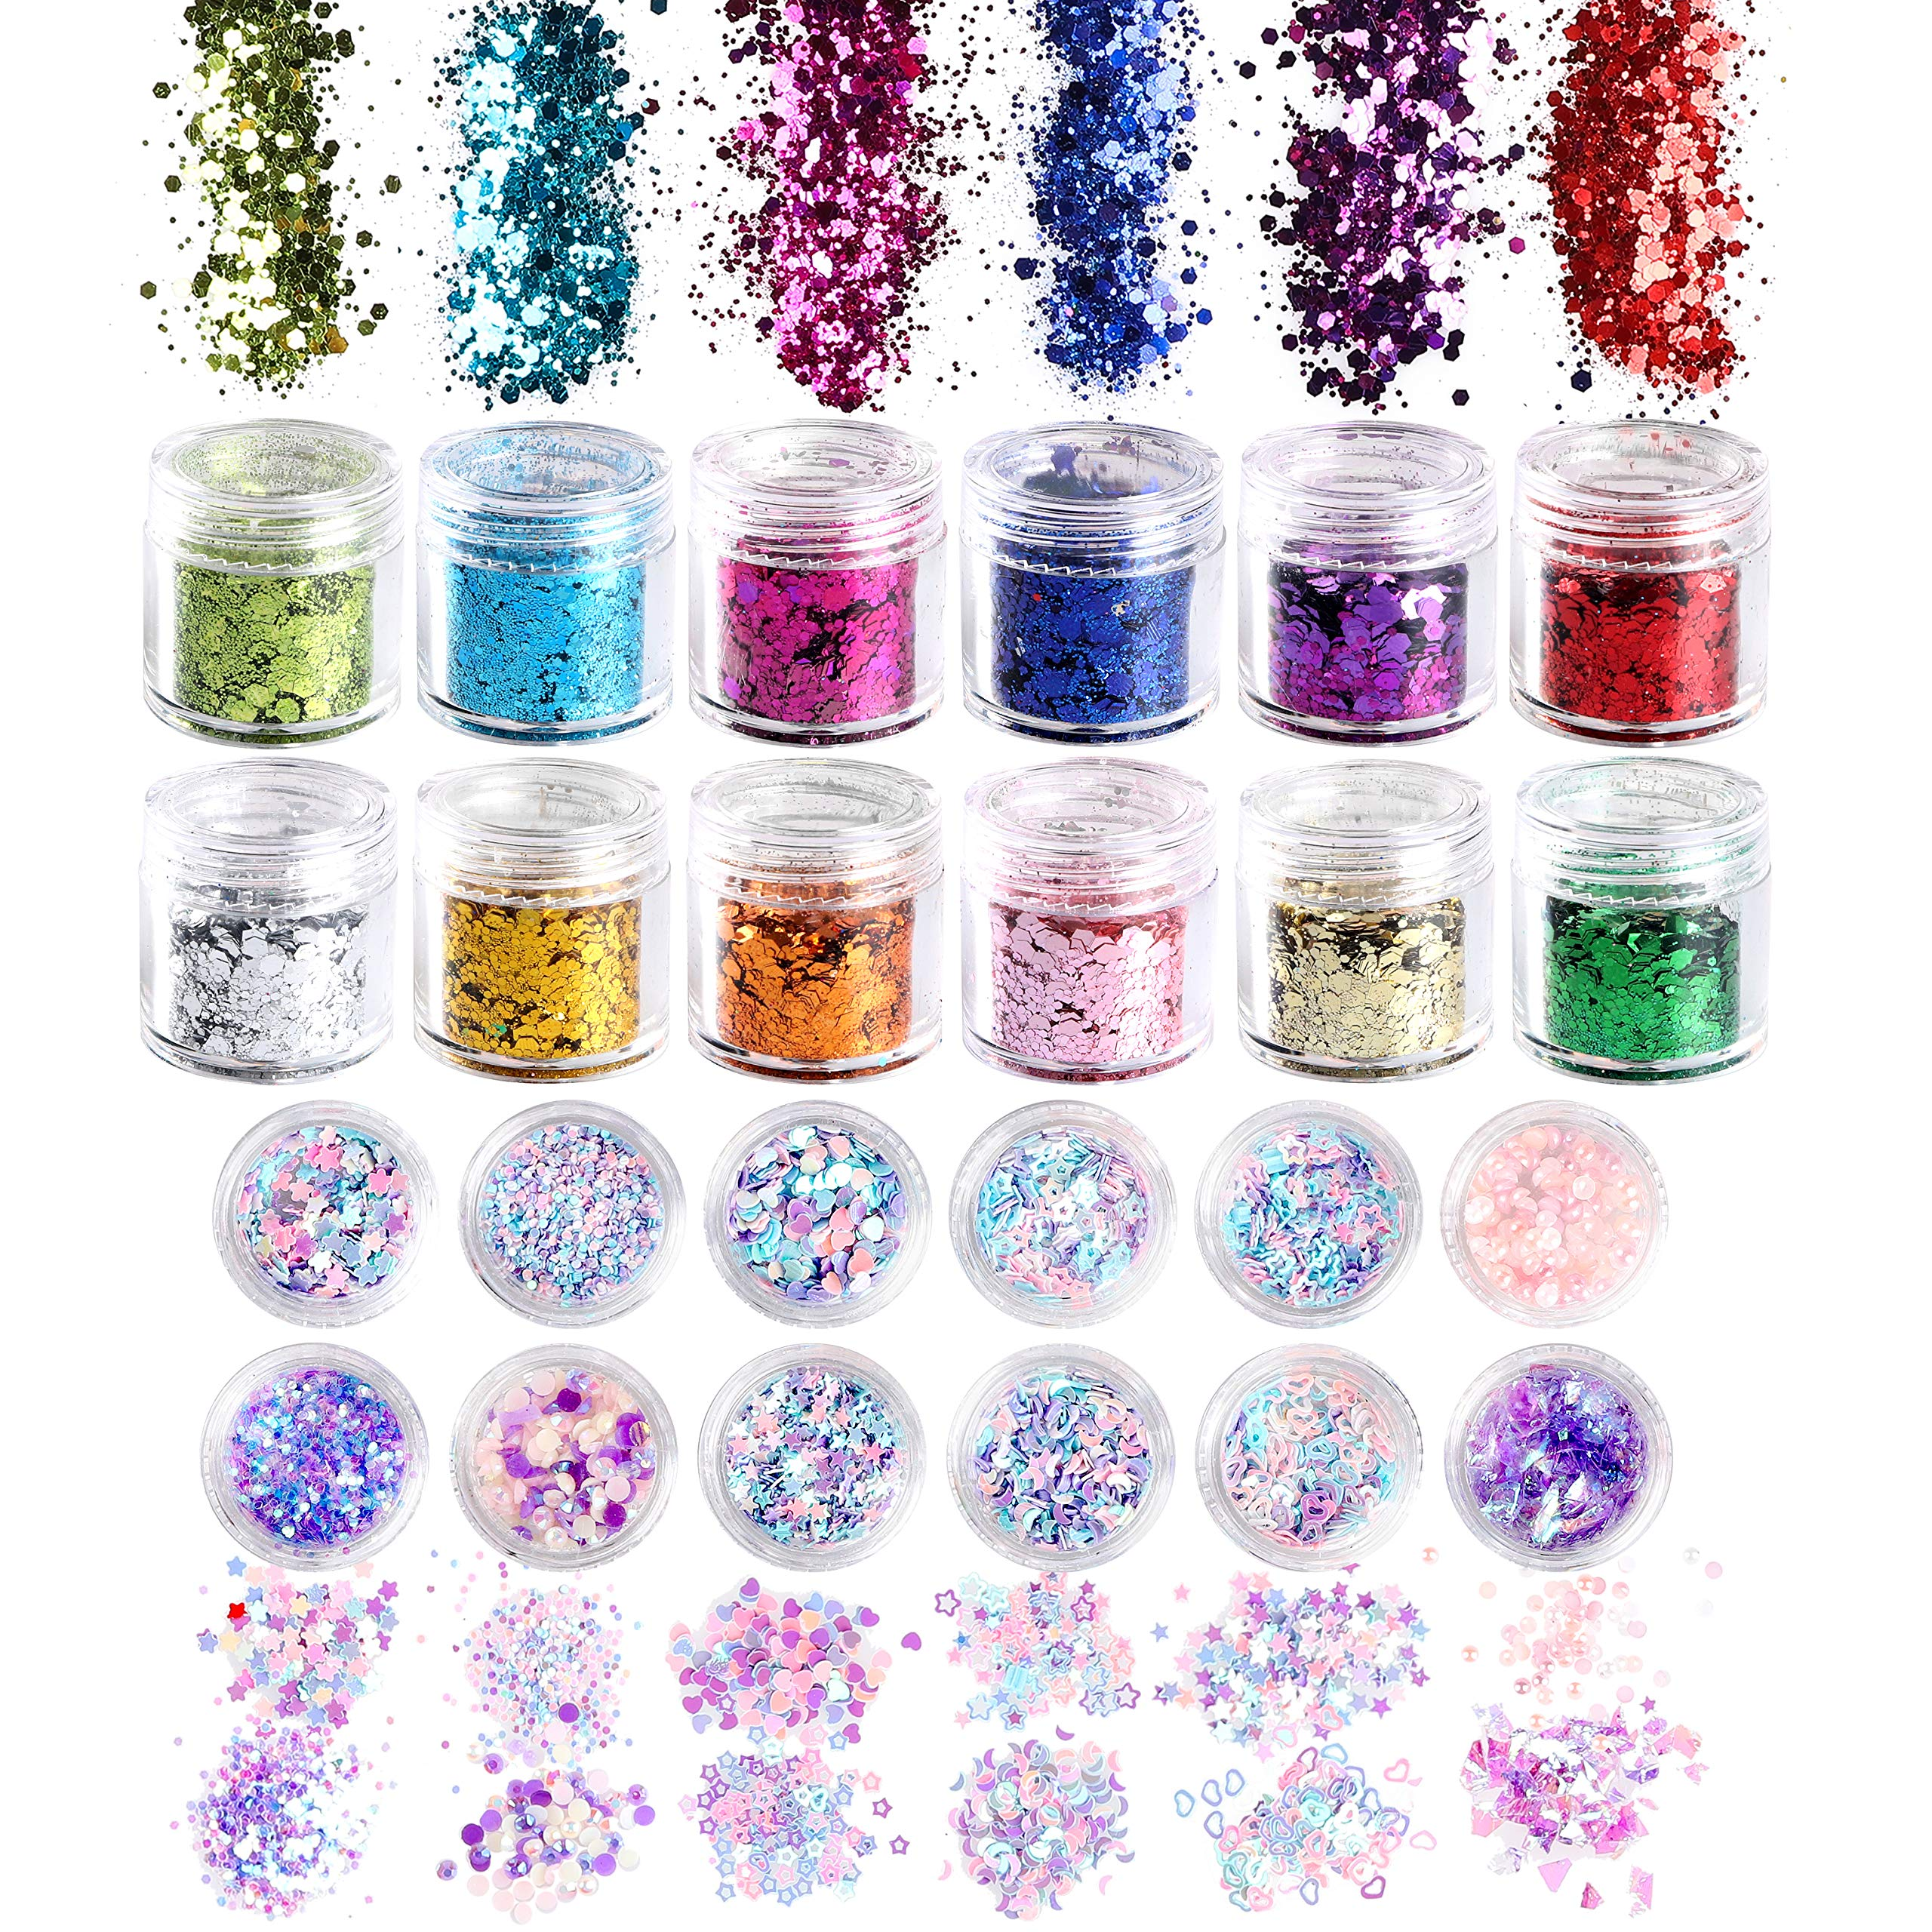 R HORSE 24 Boxes Nail Holographic Chunky Glitter Iridescent Mermaid Colorful Sequins Confetti Powder DIY Manicure Accessories for Nail Art Accessories, Face and Body Makeup, Hair, Crafts by R HORSE